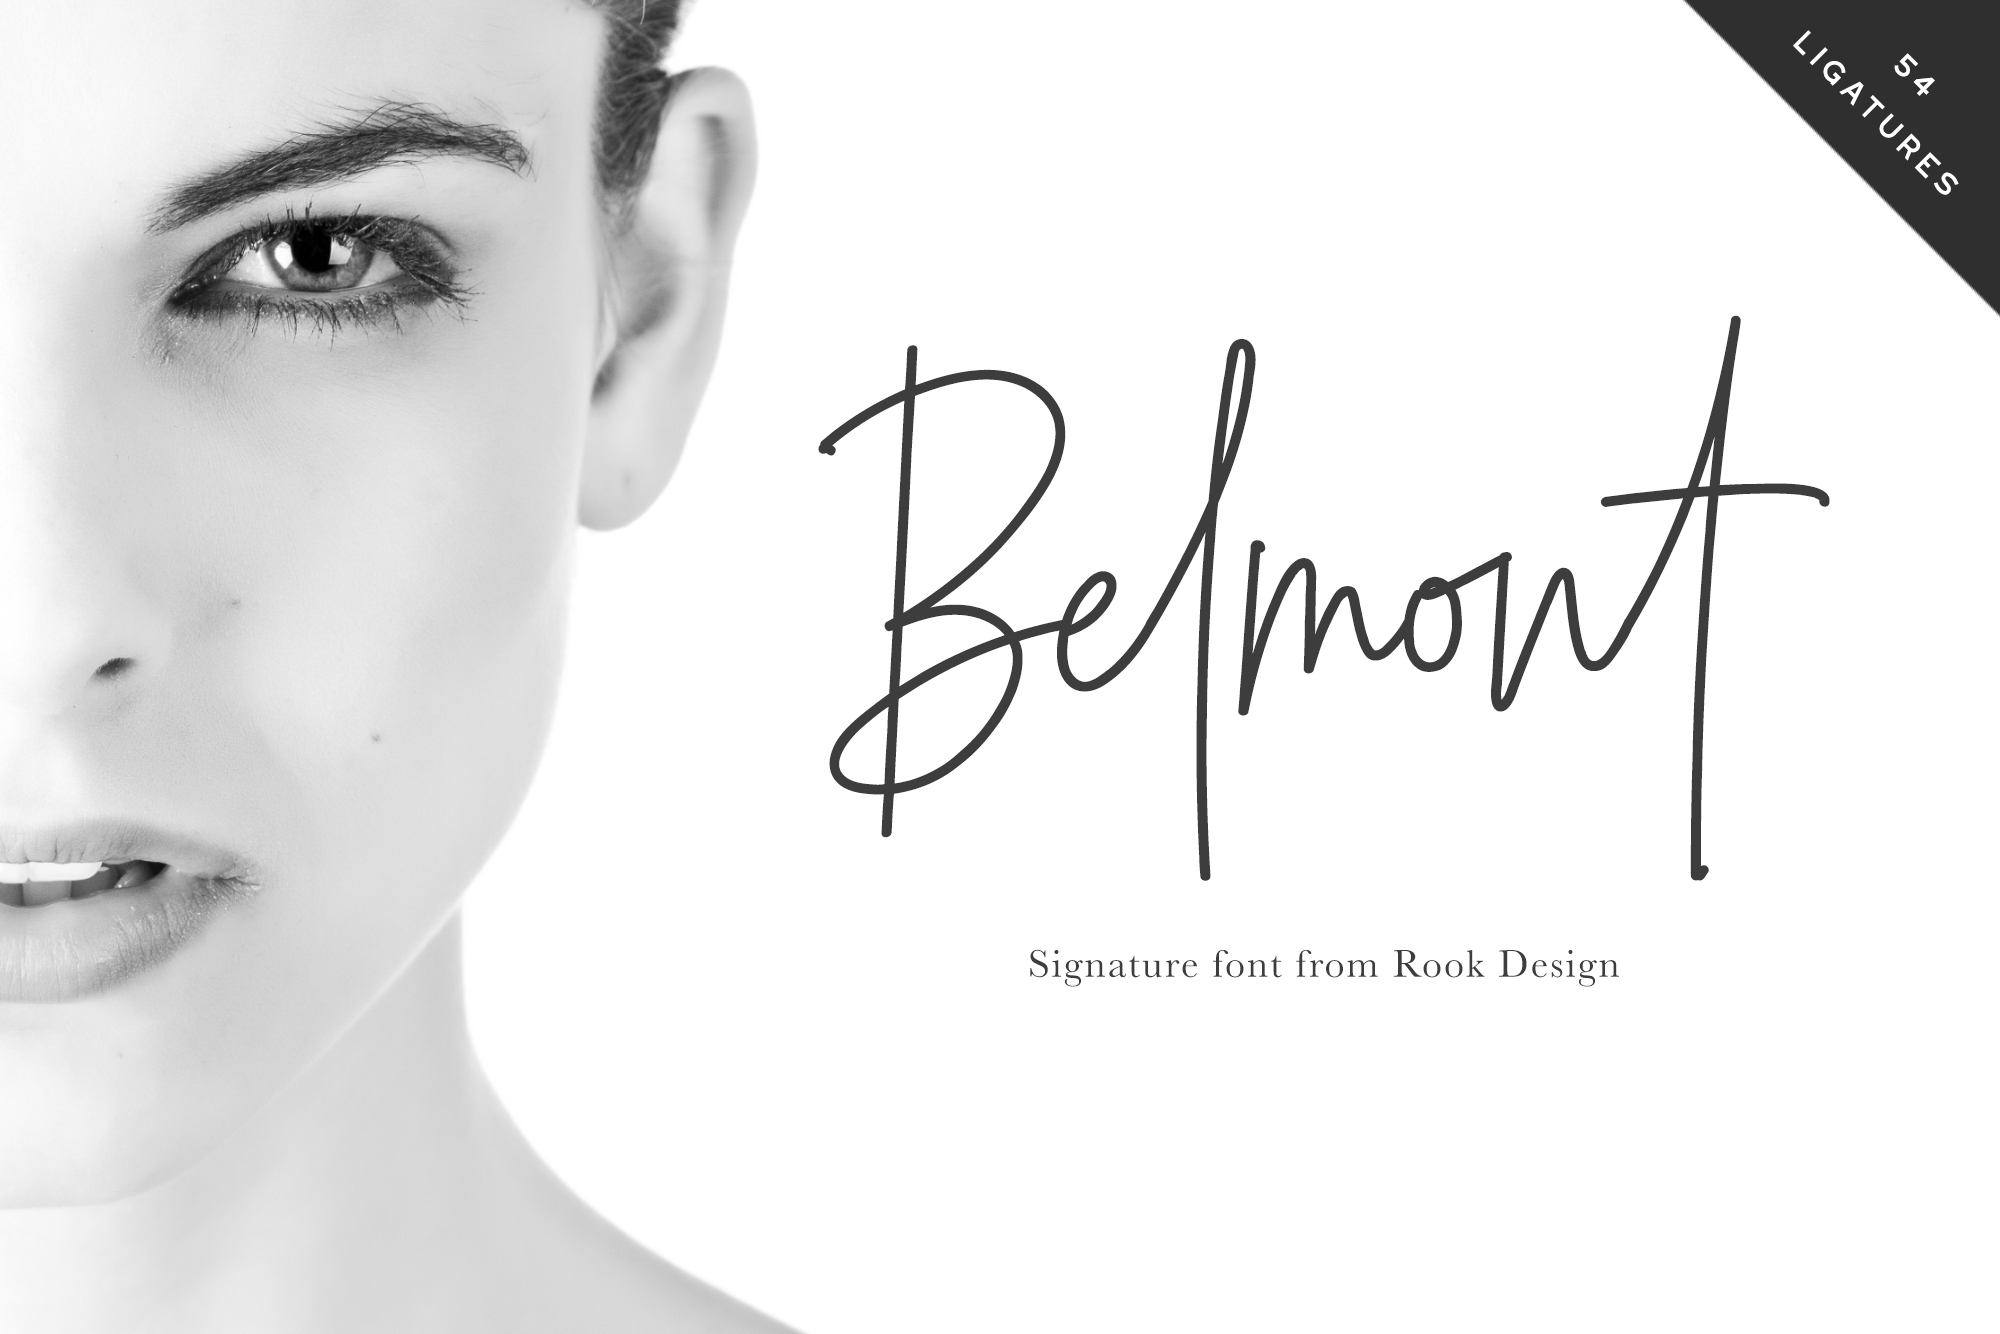 Belmont Signature Font - Available on Creative MarketAvailable on Font Spring